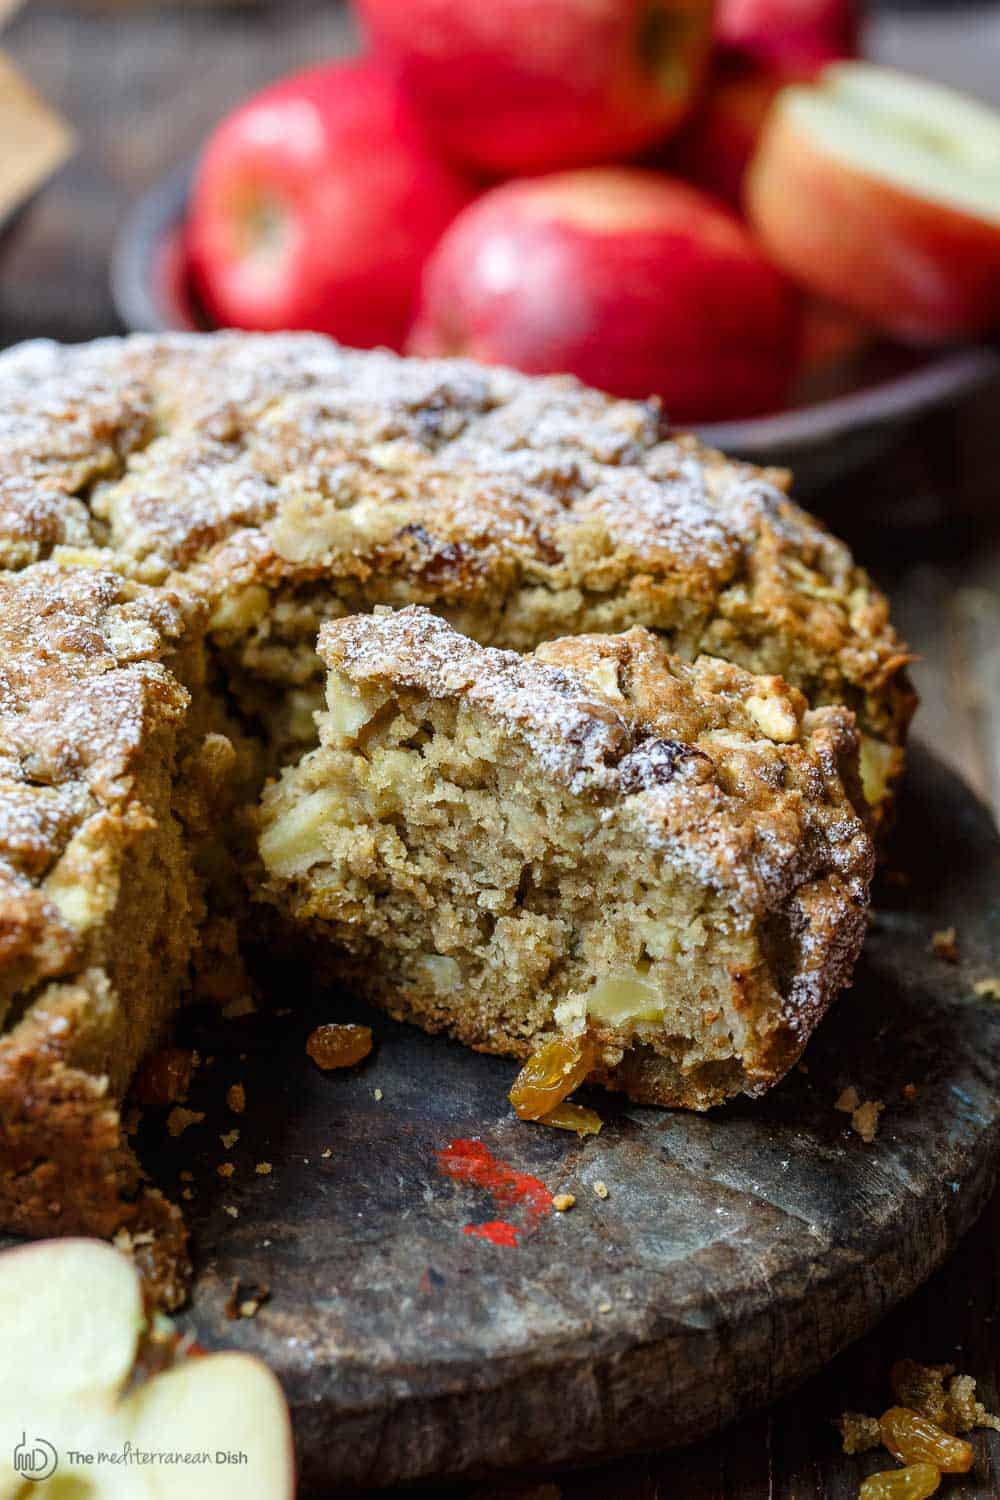 Italian Apple Olive Oil Cake. Part of 21 Mediterranean Christmas Brunch Recipes | The Mediterranean Dish #christmasbrunch #mediterraneanrecipes #brunchrecipes